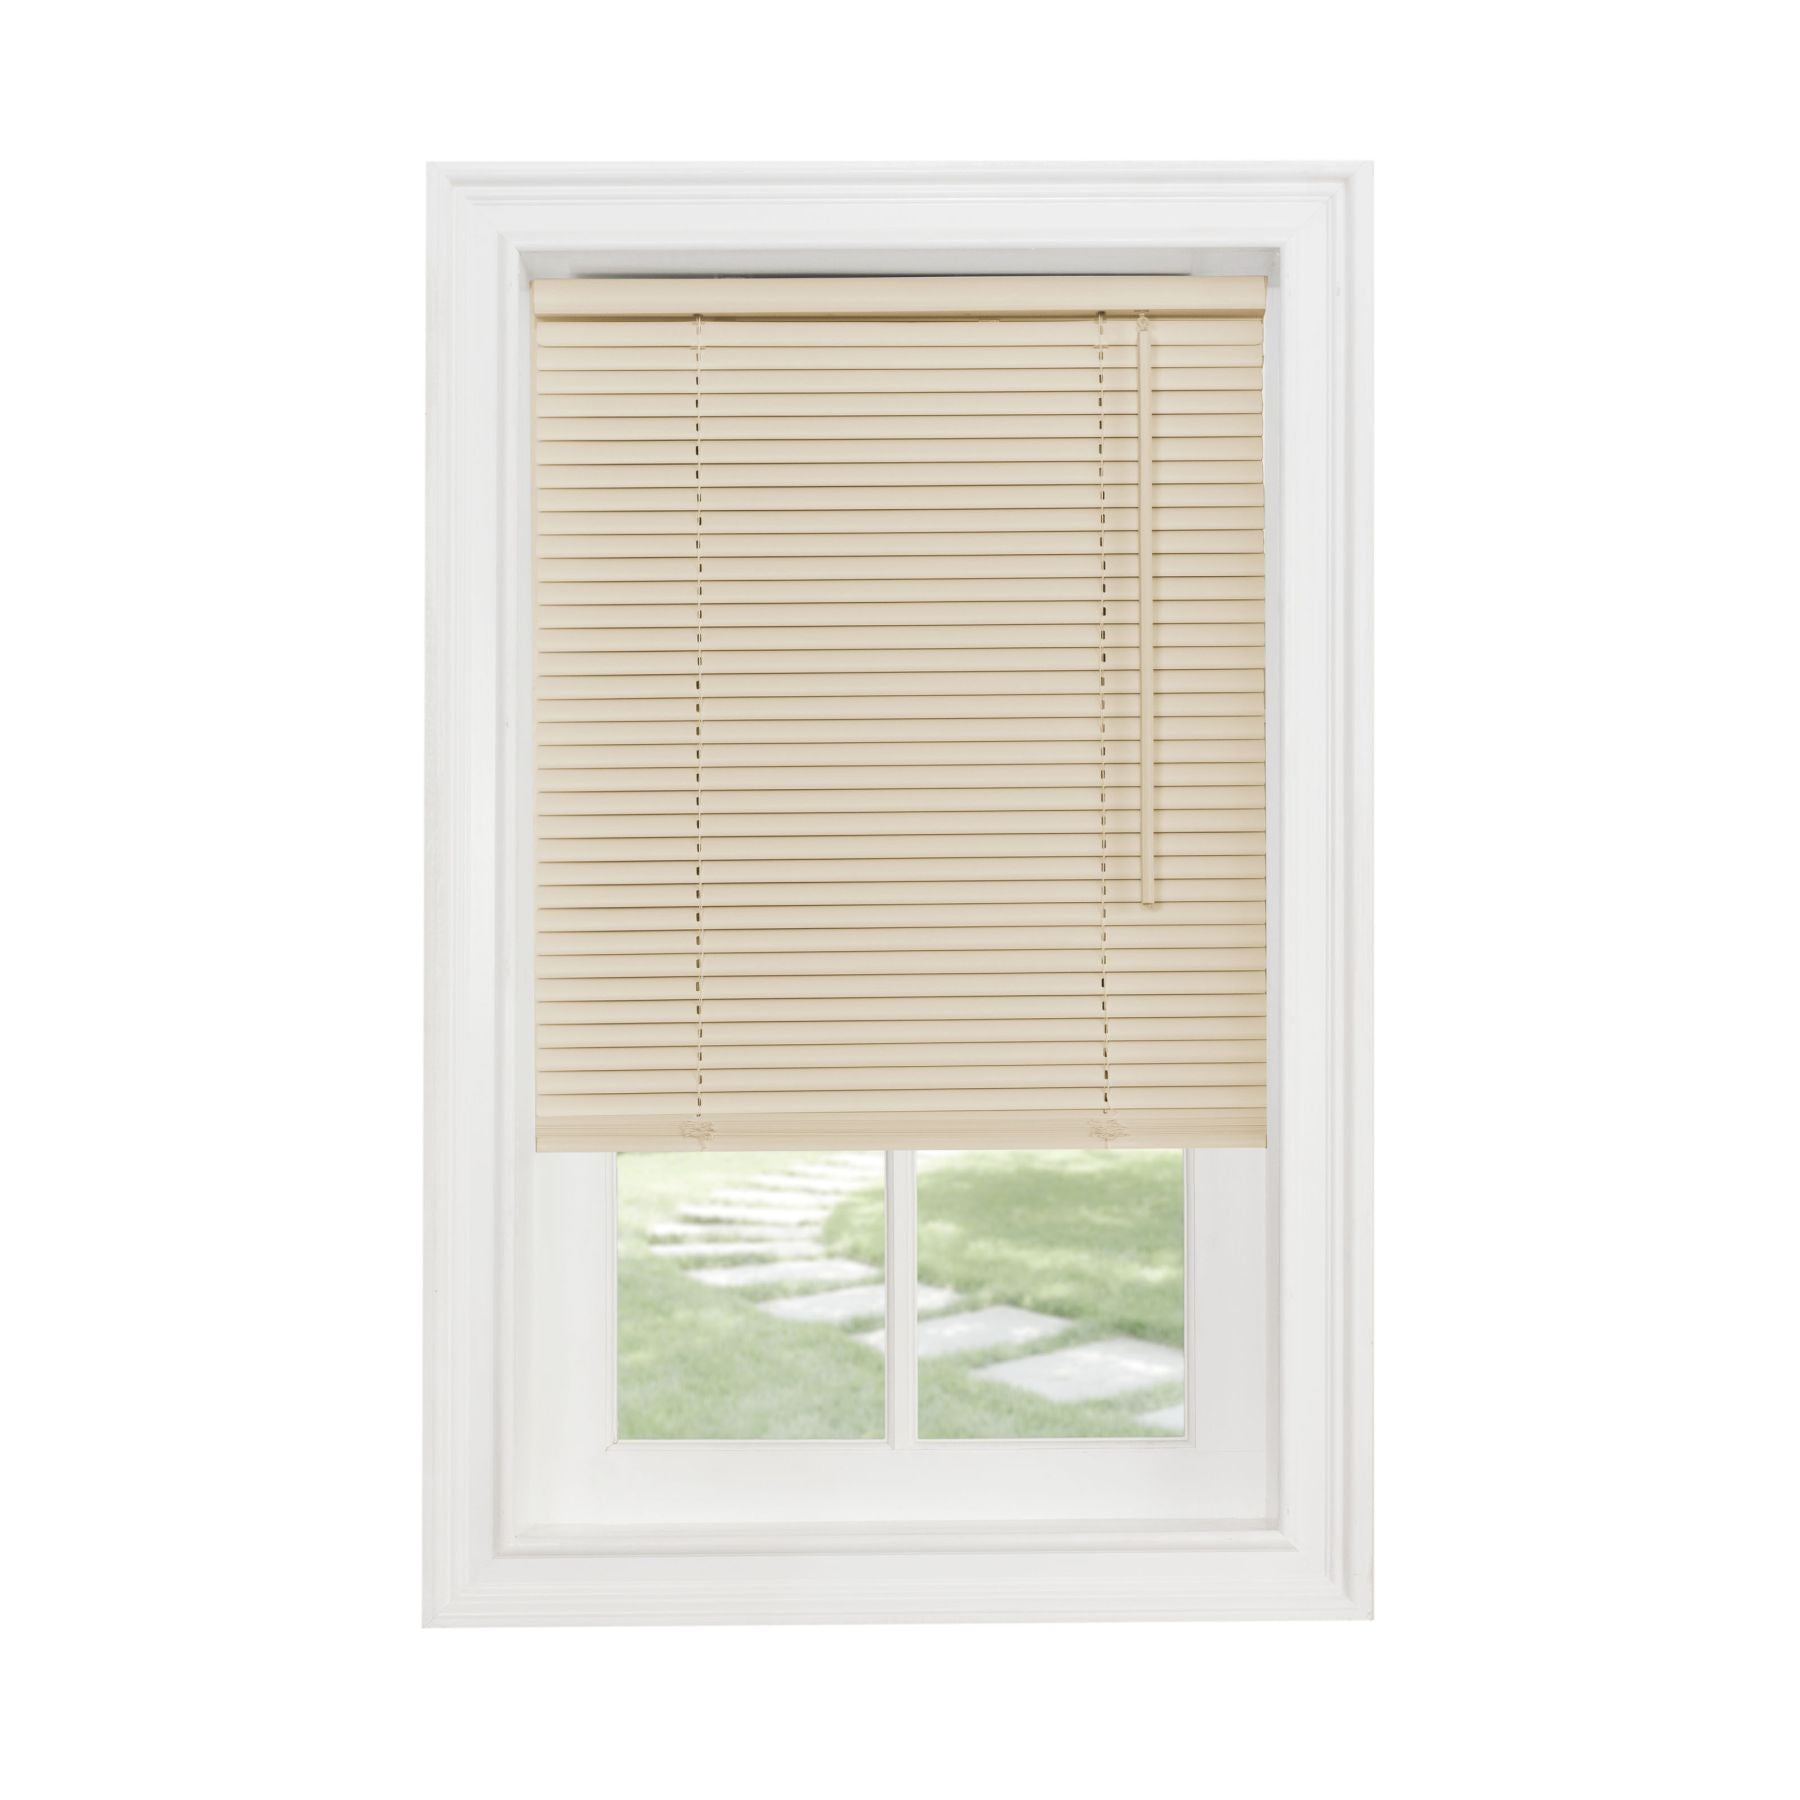 "Traditional Elegance Cordless Sunrise 1"" Light Filtering Mini Blind 33x64 - Alabaster"